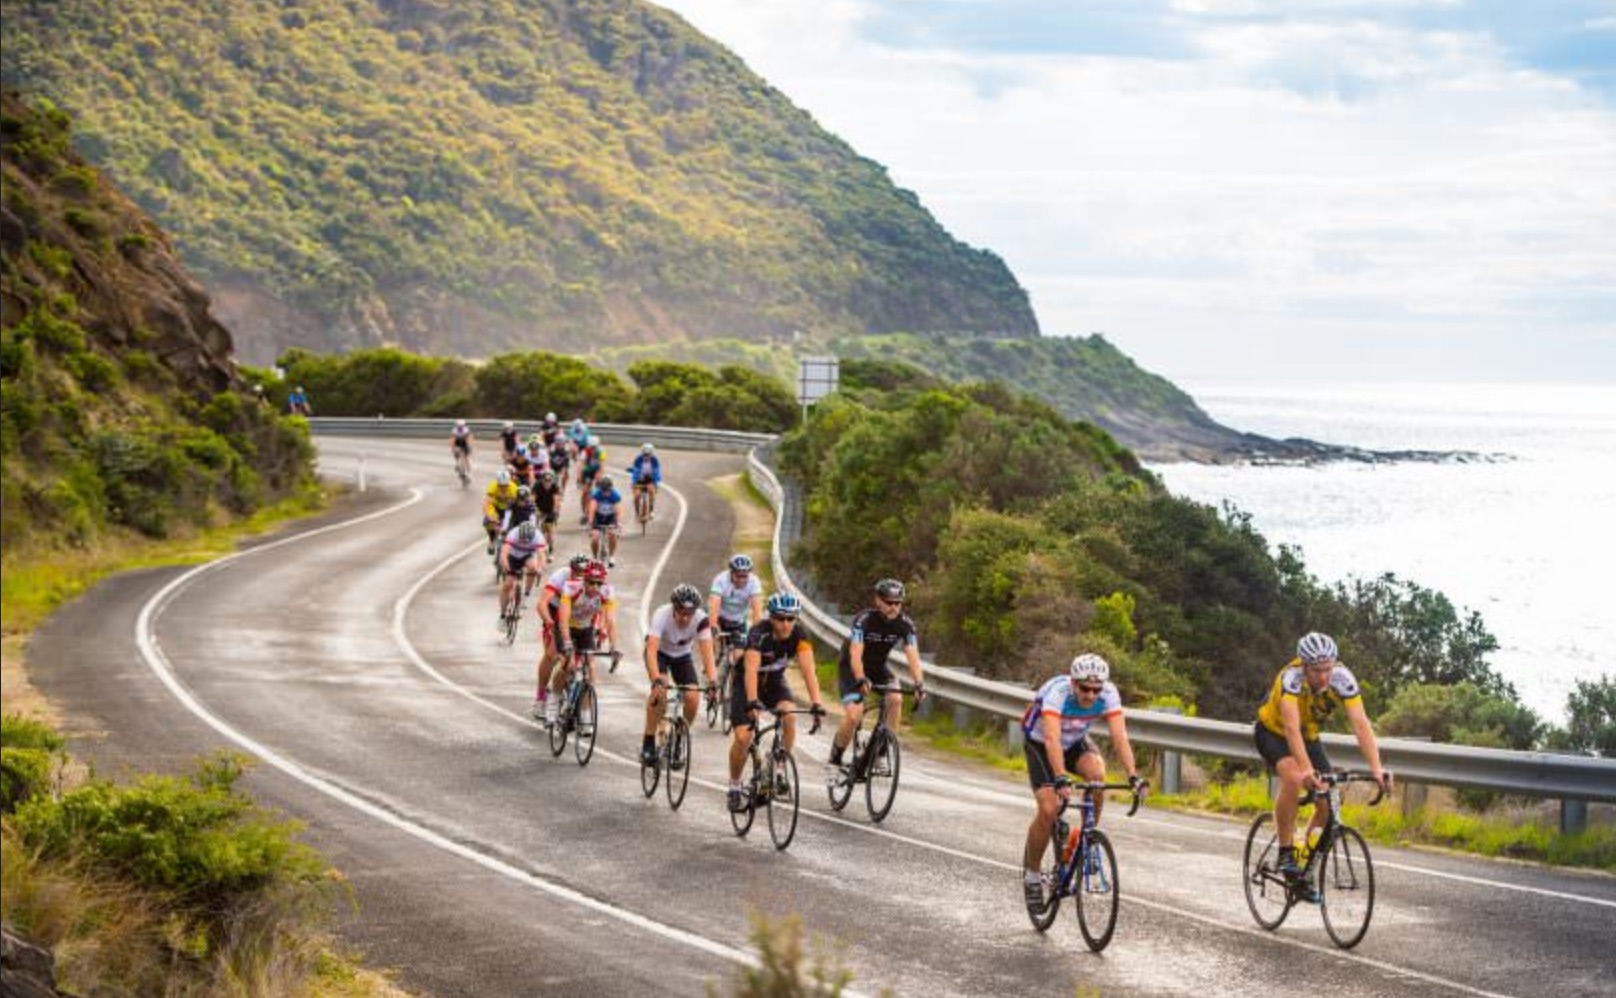 Cycle - Ride the iconic Great Ocean Road and explore the beautiful hinterland. Find a local ride